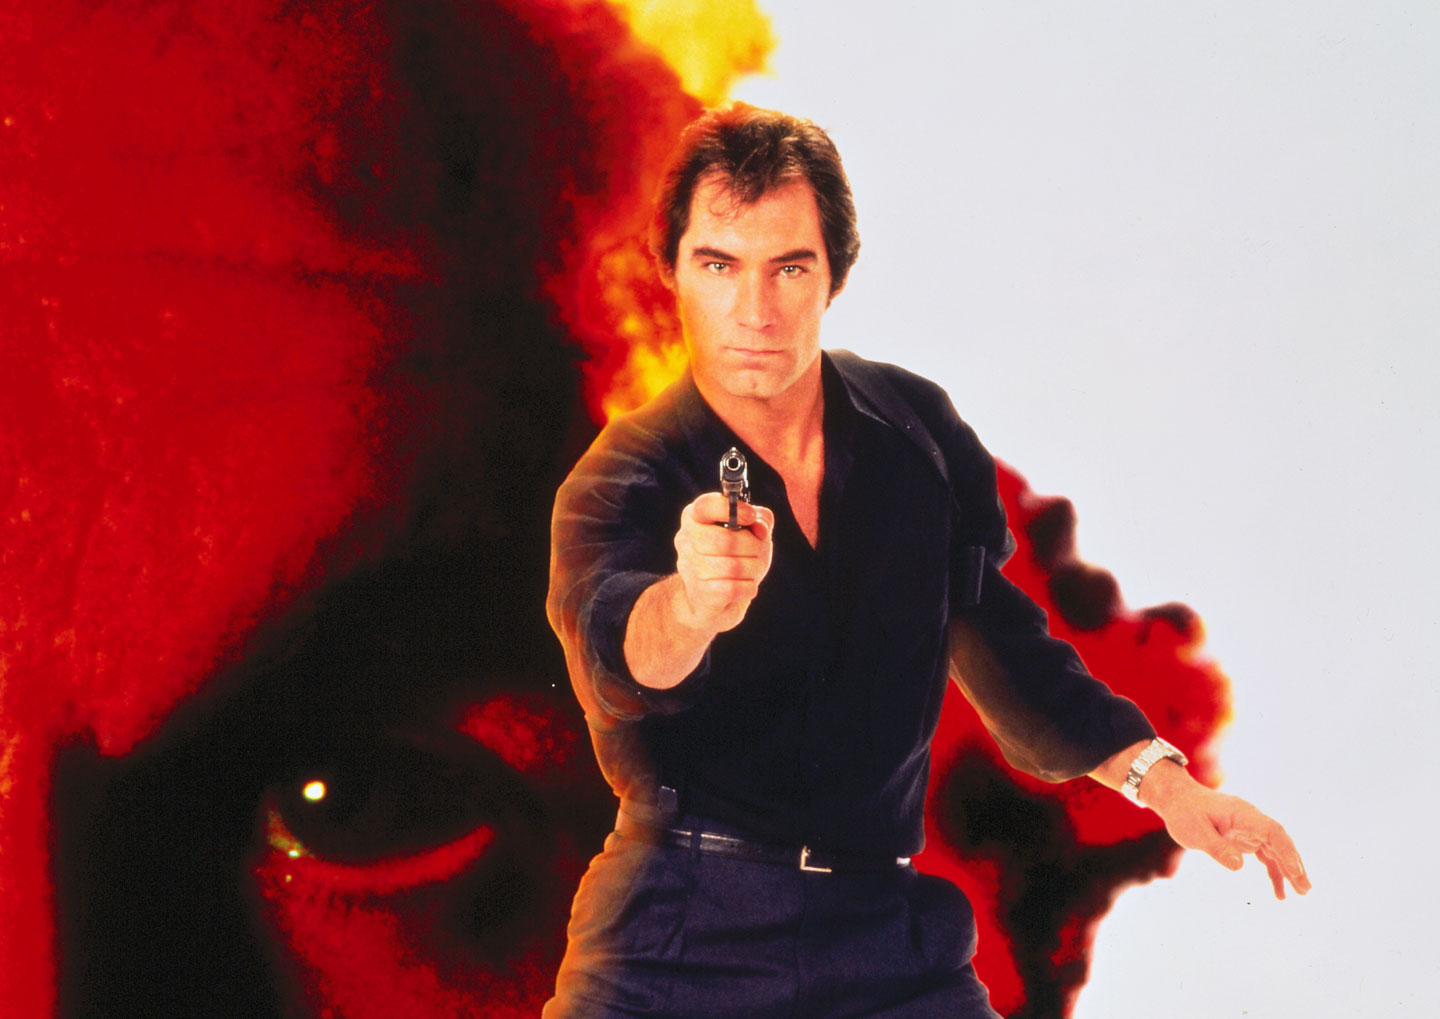 Licence To Kill header image